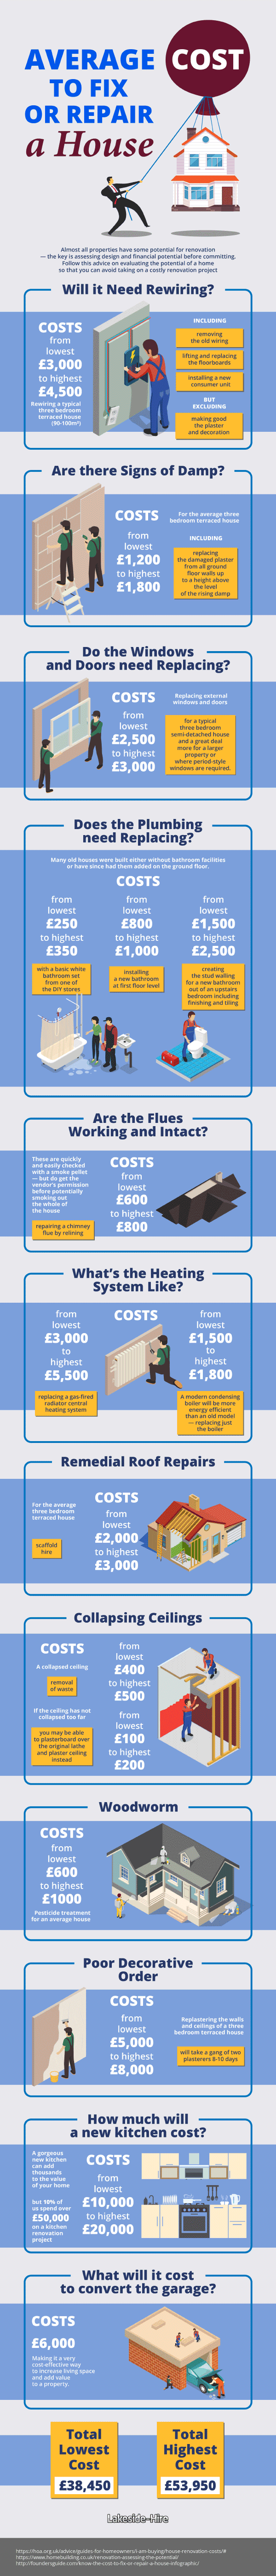 infographic-cost-repair-house